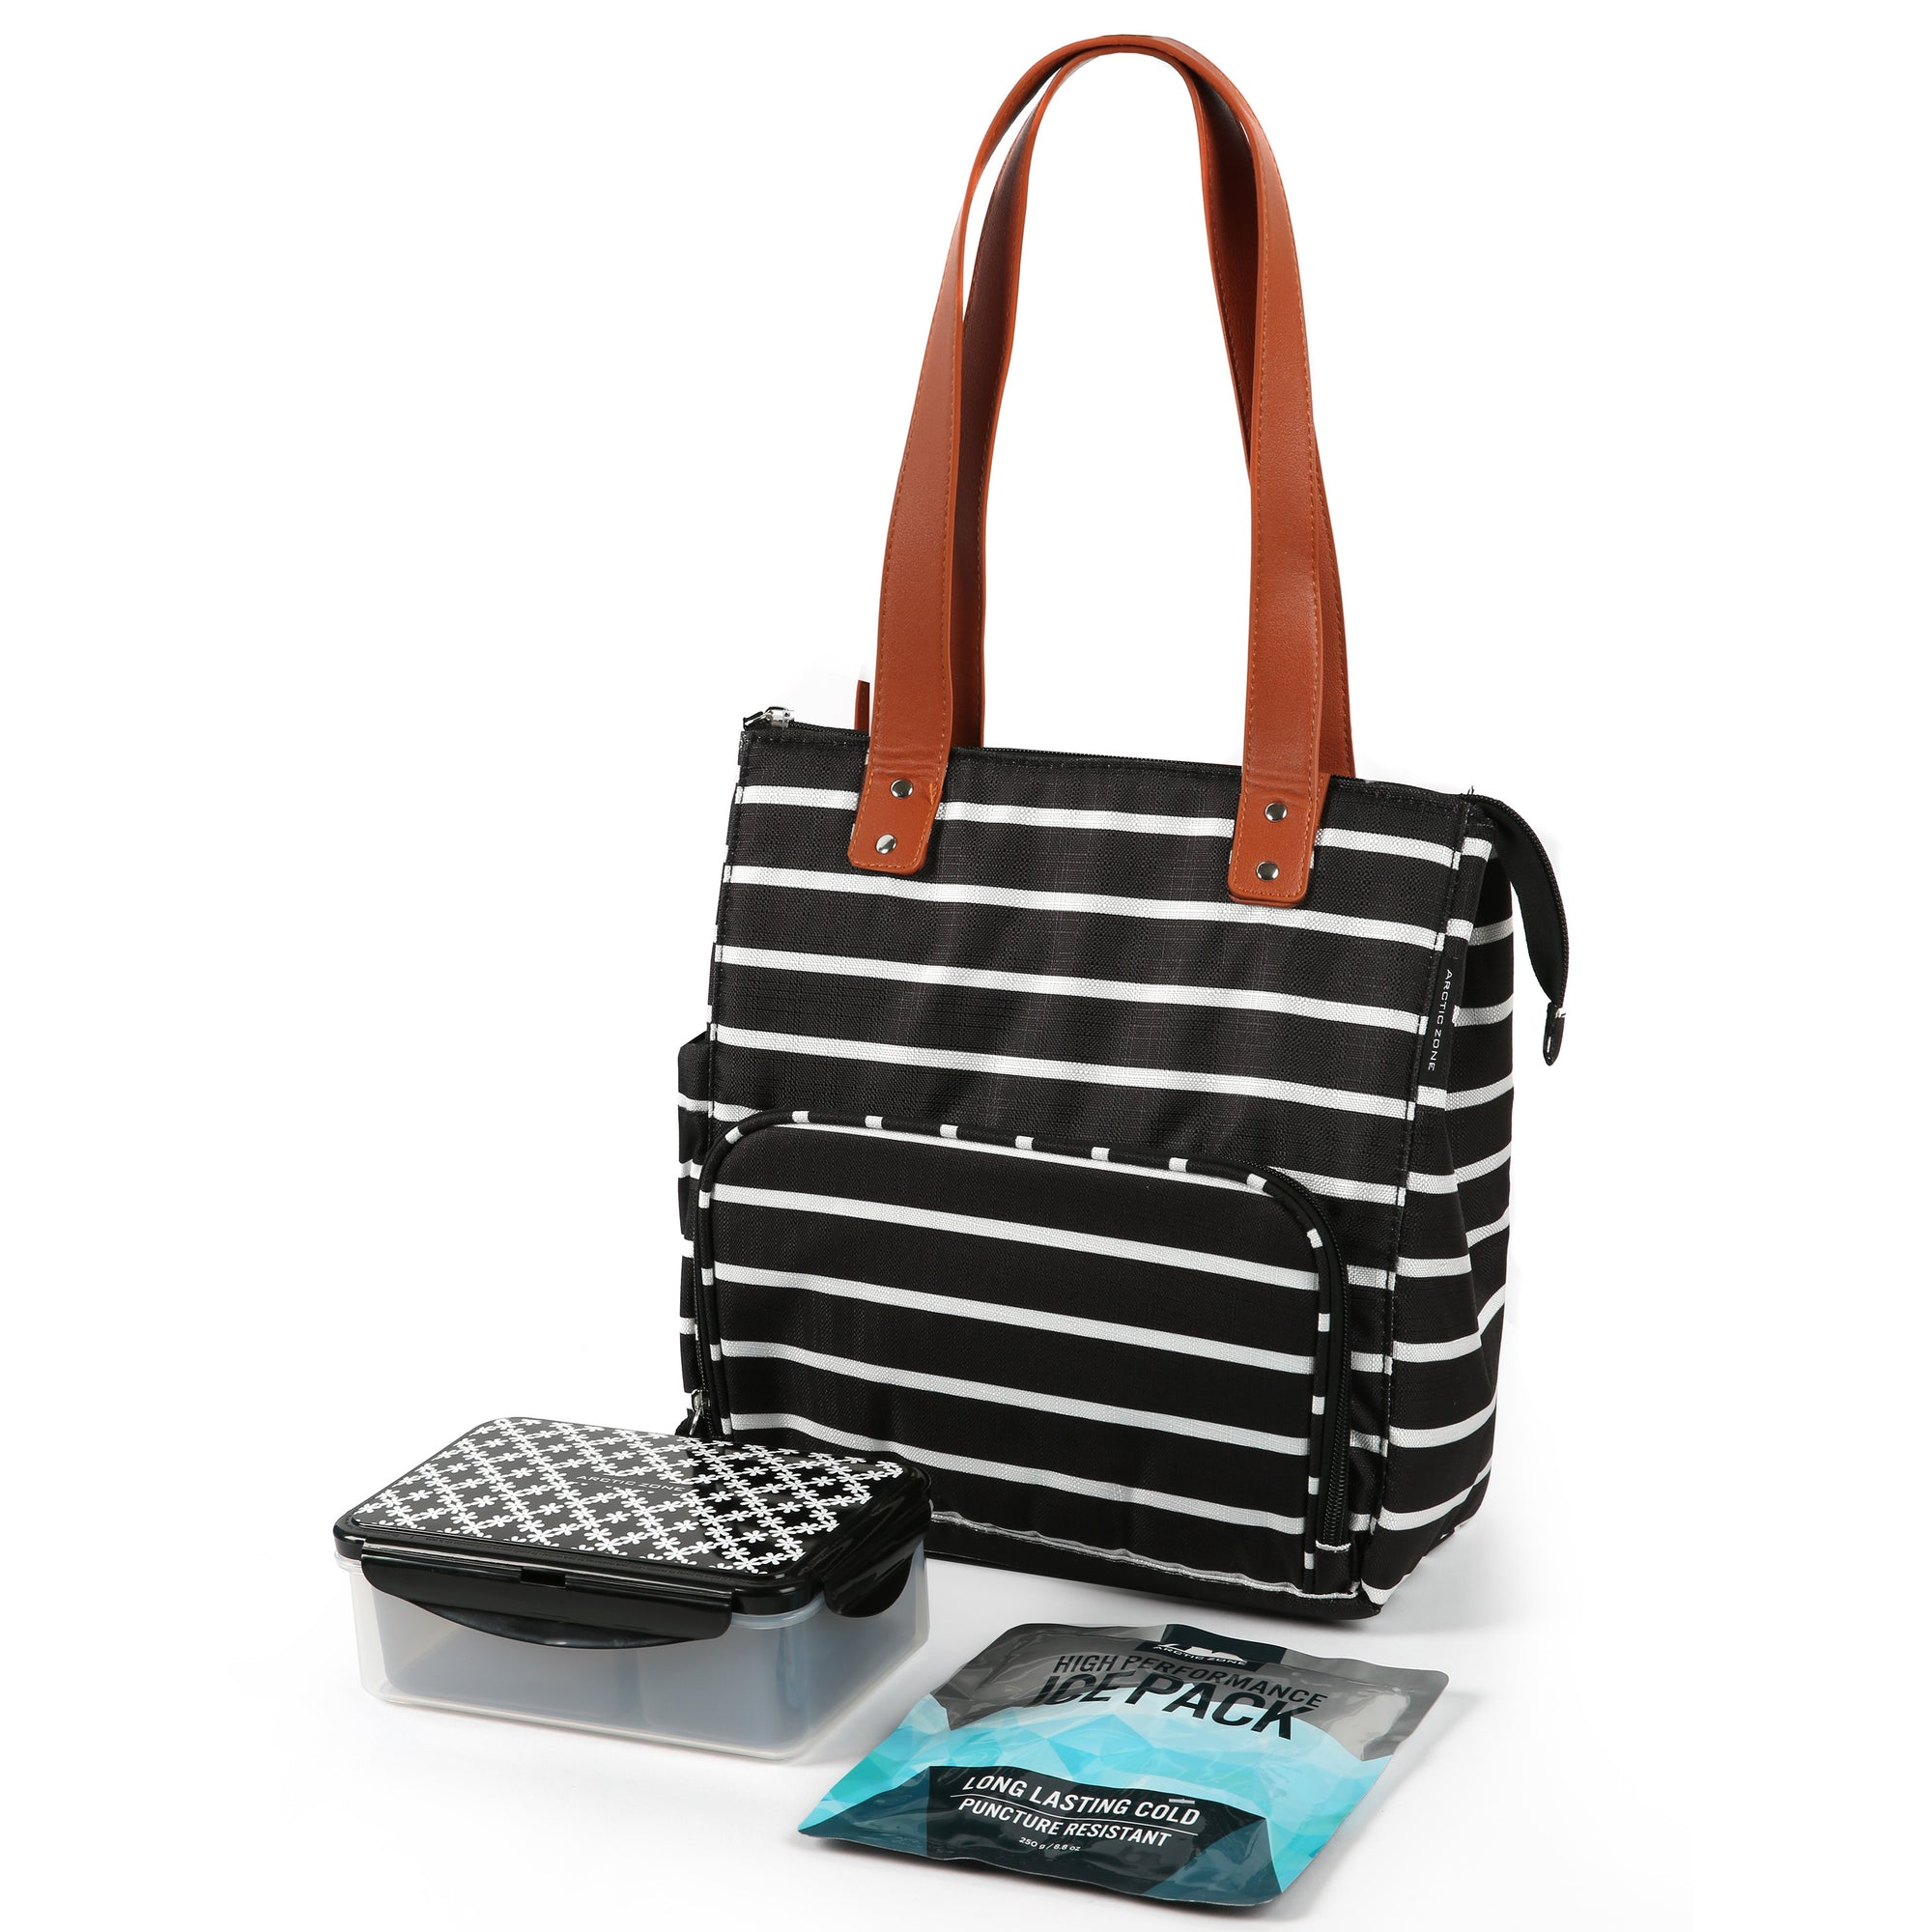 Arctic Zone® Abigail Tote - Basic Stripes - Bag with ice pack and containers